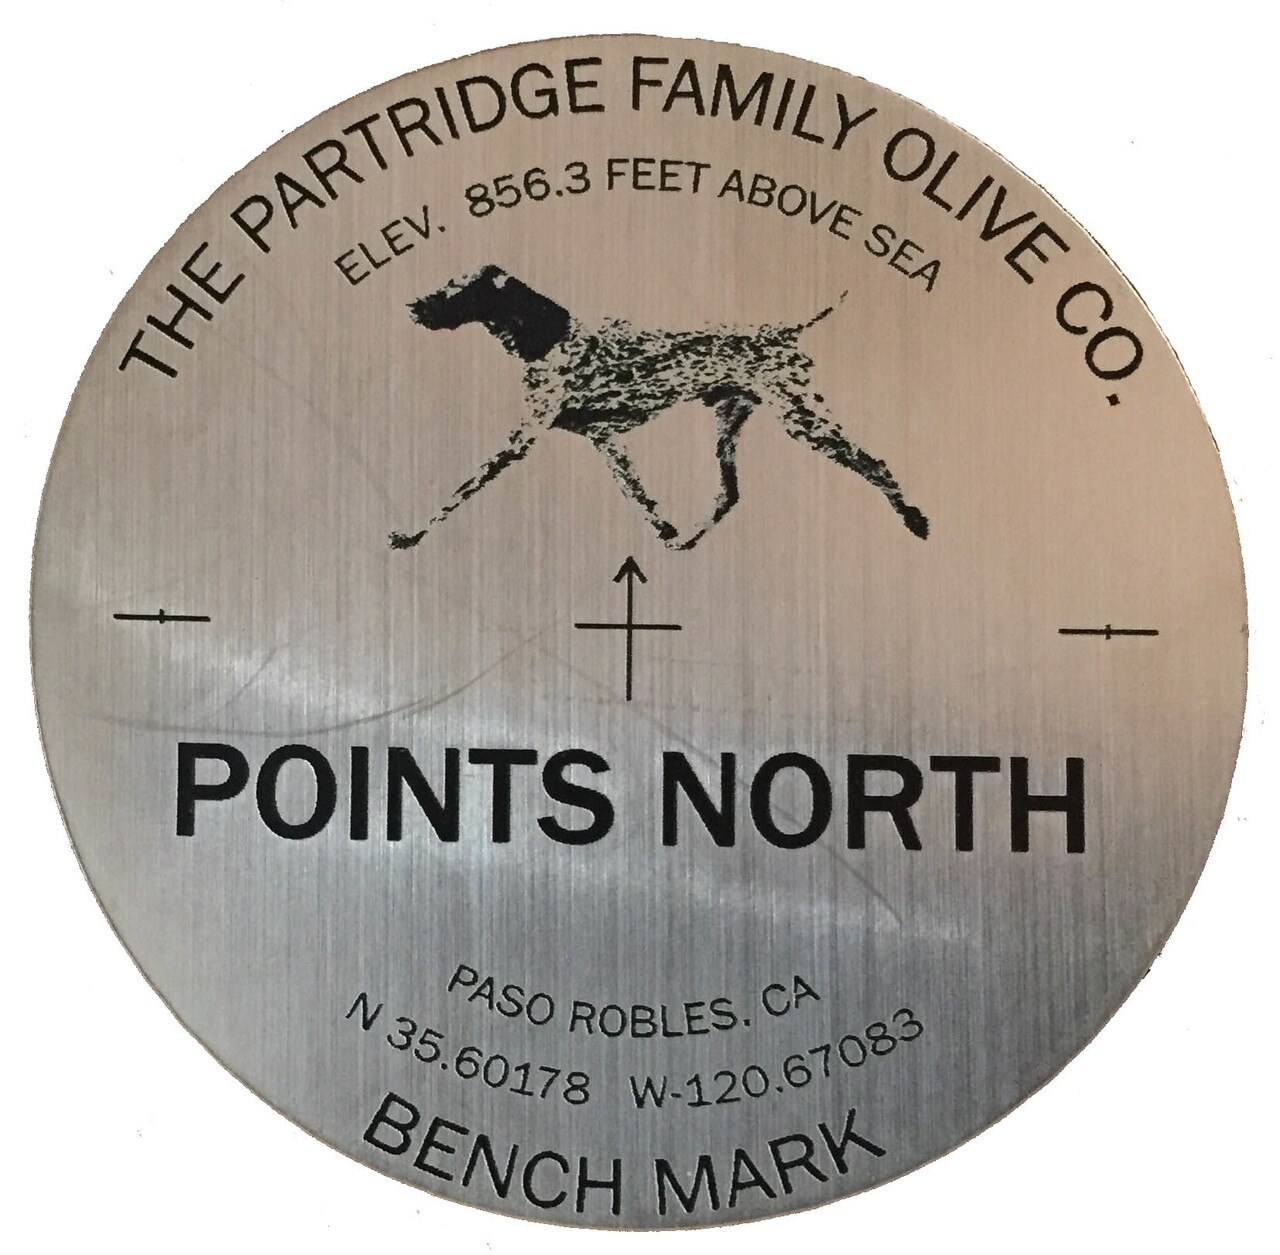 Points North label